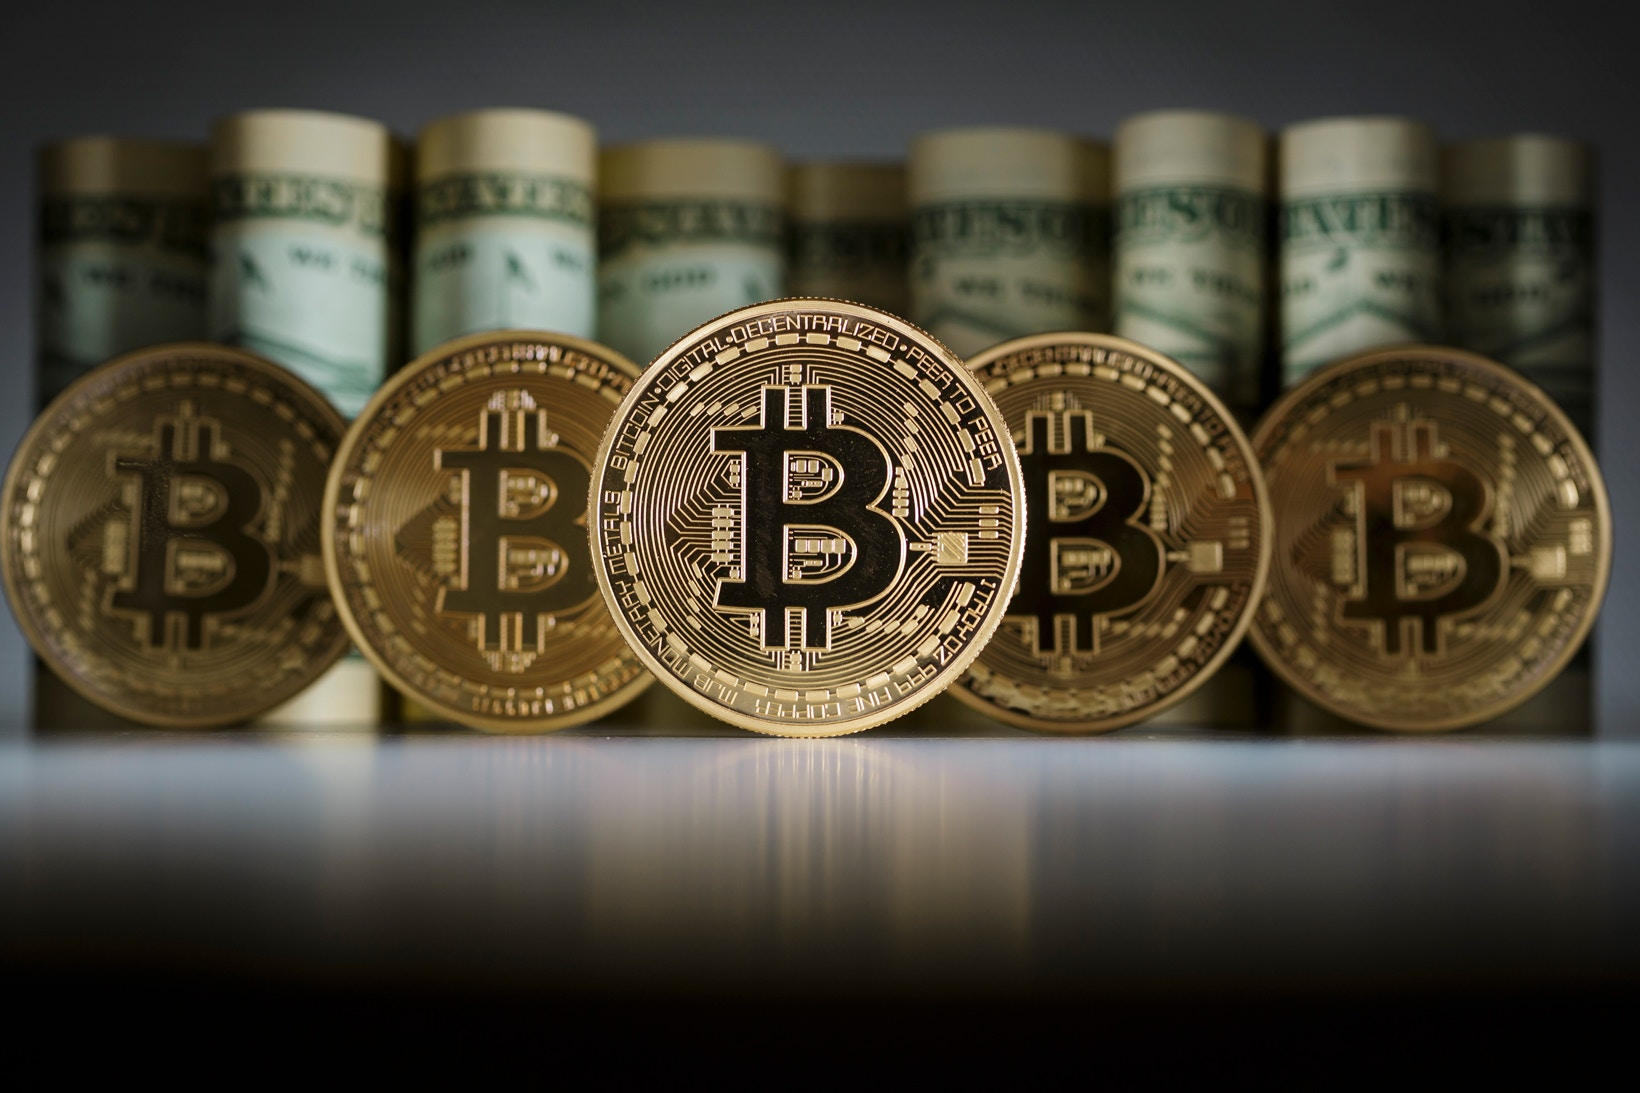 bitcoin-creator-sued-for-10-billion-usd-01